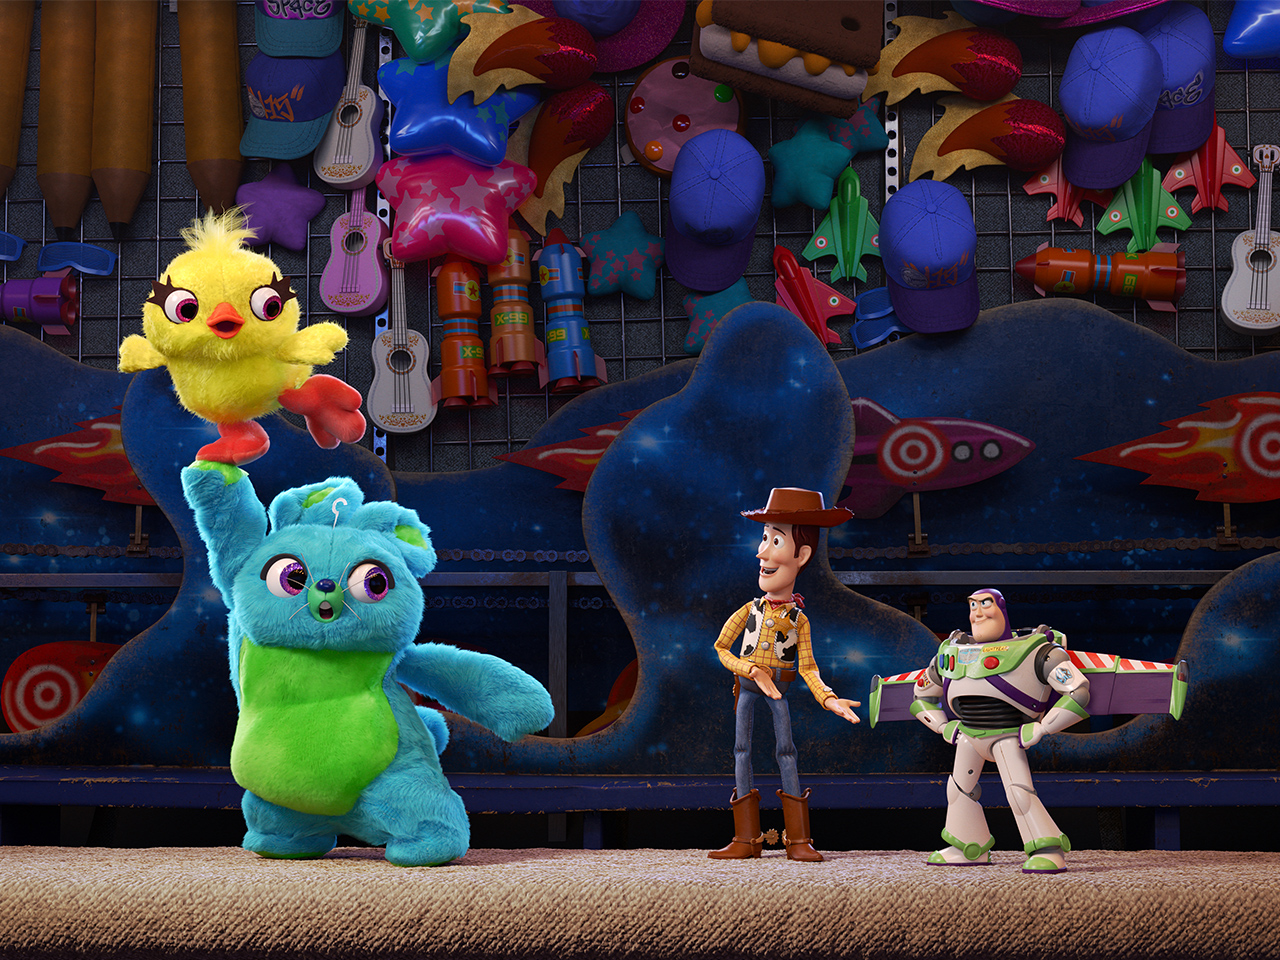 Promo image from Toy Story 4 showing woody and buzz talking to carnival prize stuffies